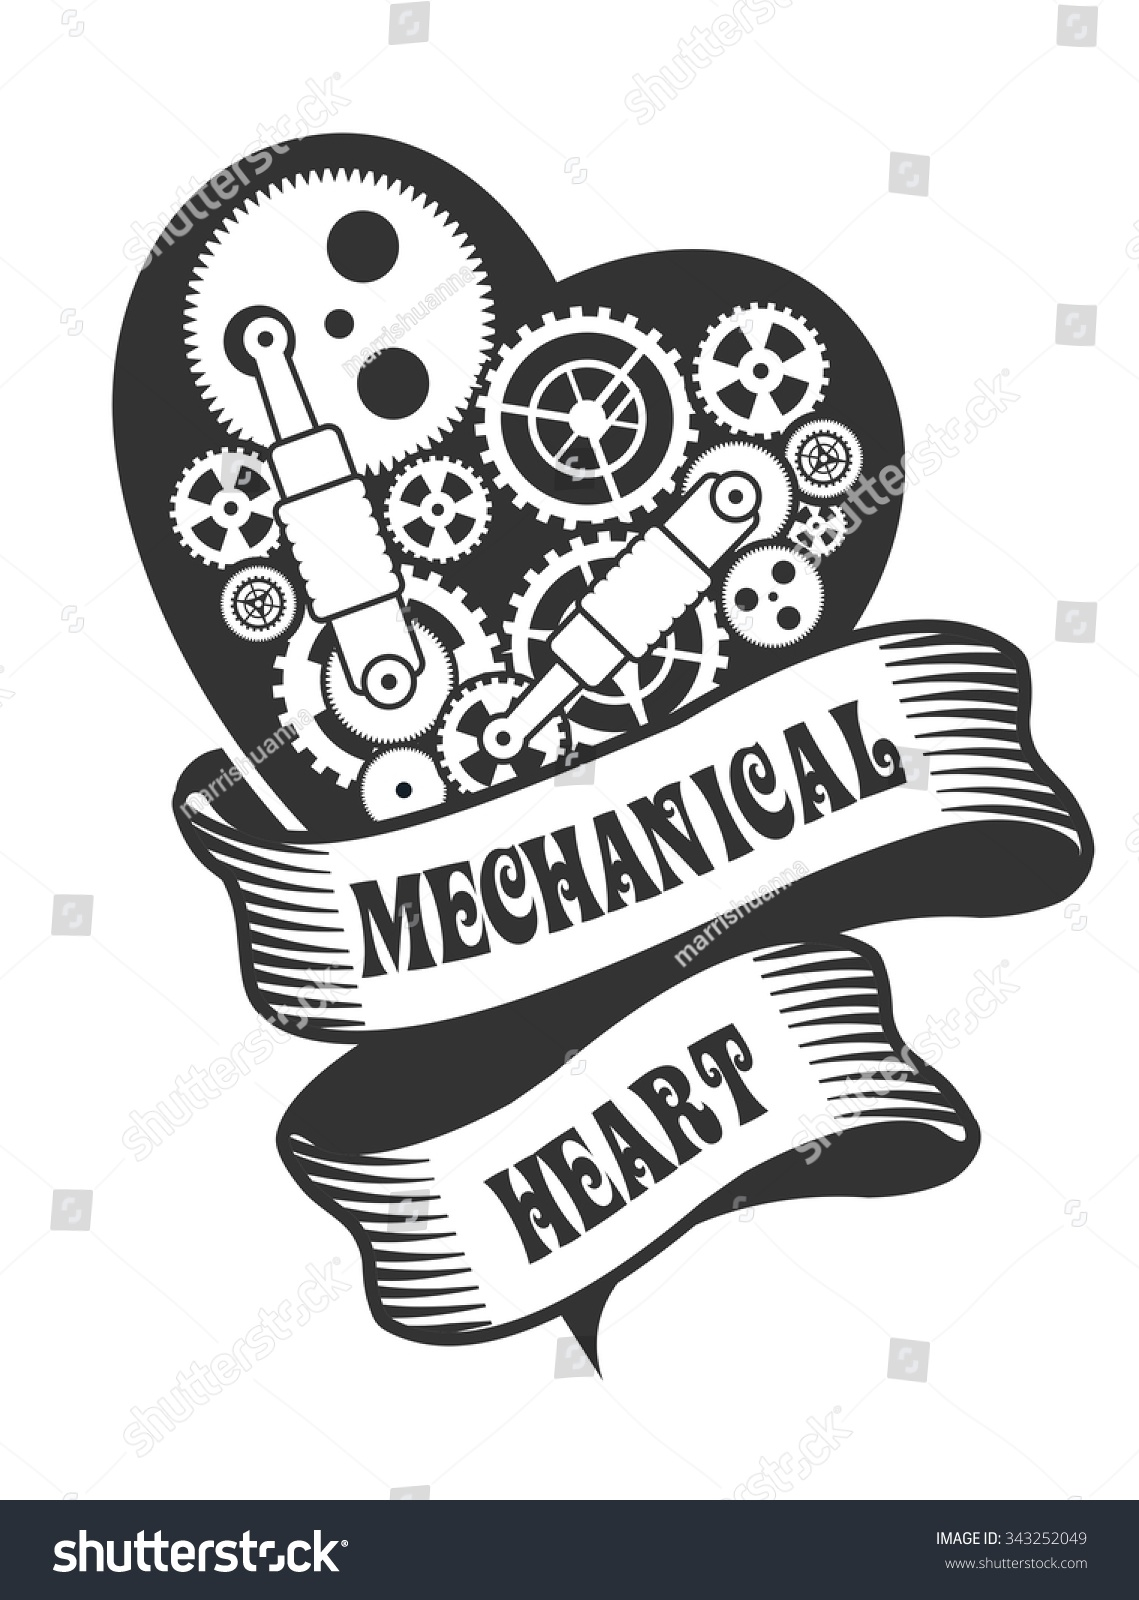 Royalty Free Stock Illustration Of Mechanical Heart Steam Punk Small